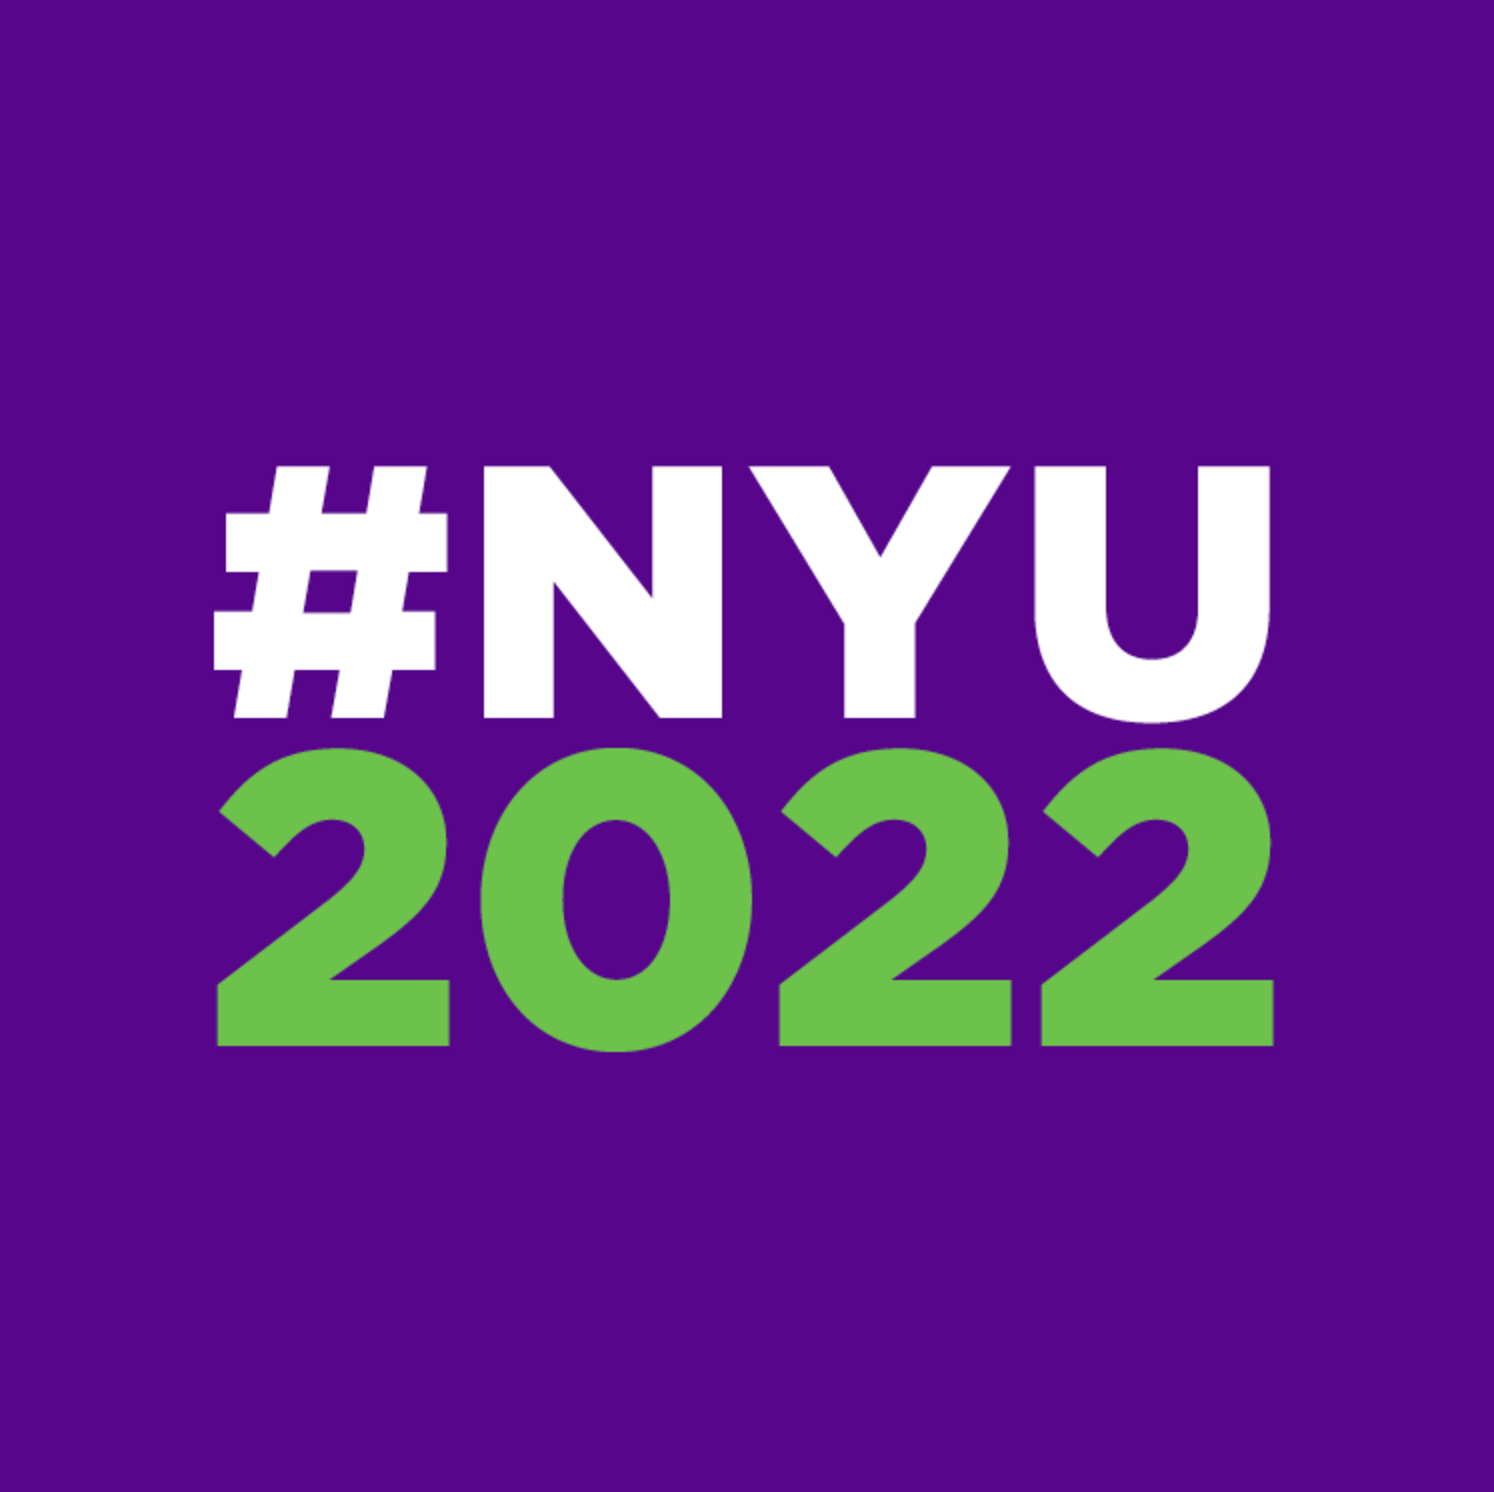 NYU has received the highest application rate passing 75,000 applicants for the Class of 2022.